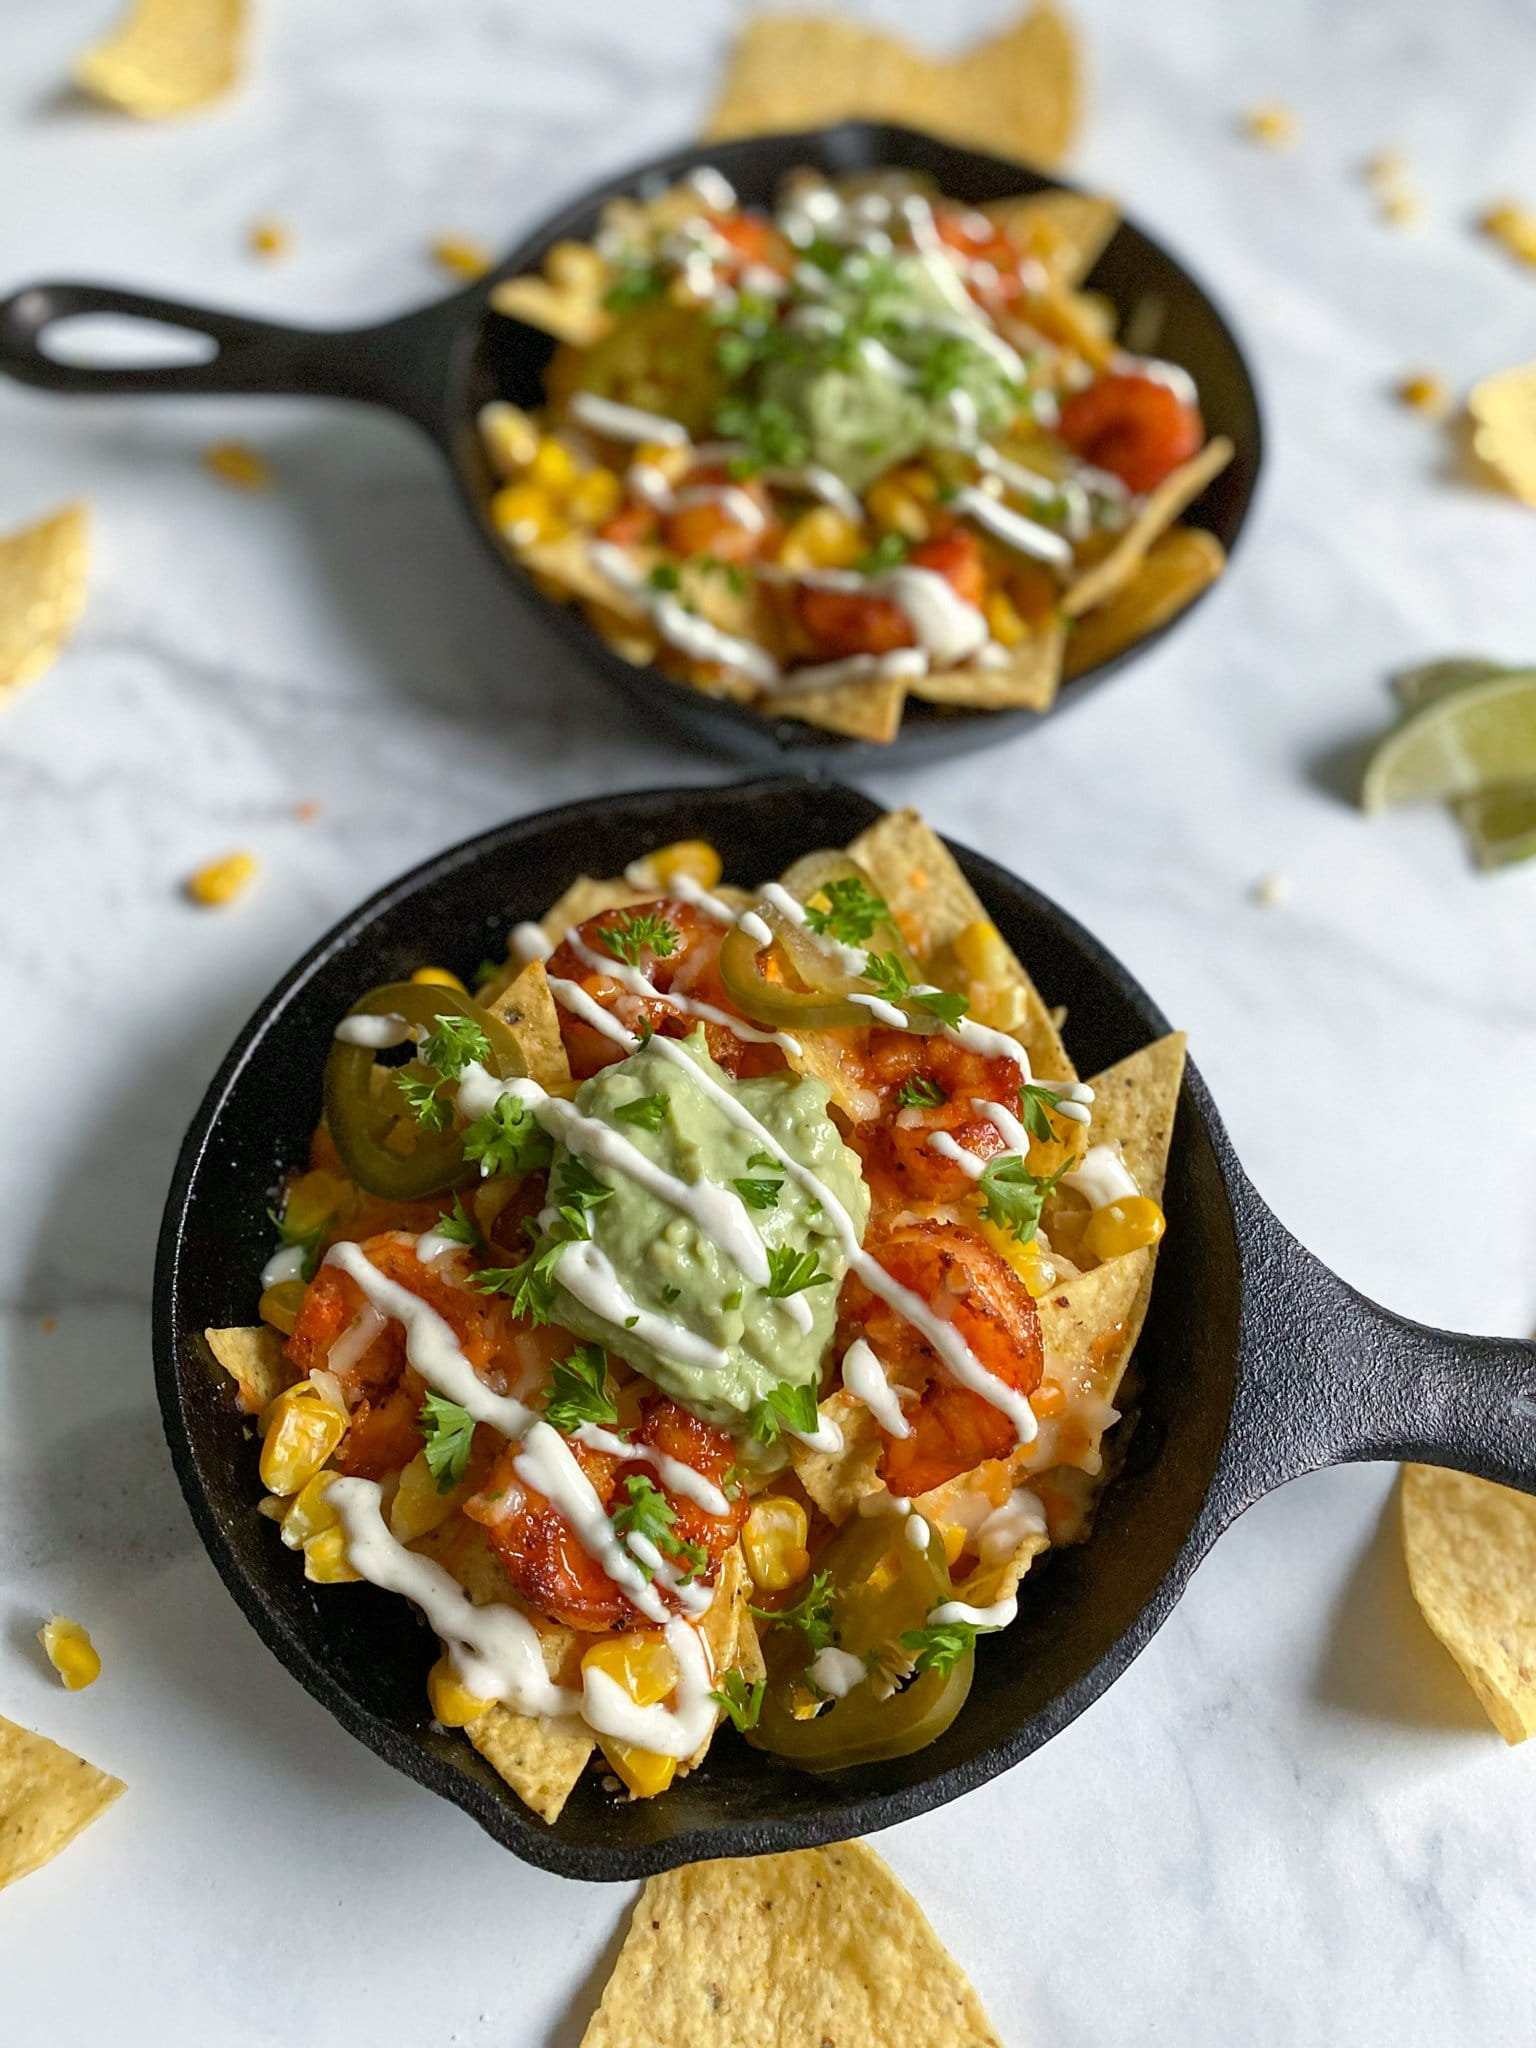 Two cast iron pans filled with honey shrimp nachos, topped with corn, guacamole and a homemade creamy cumin lime dip.